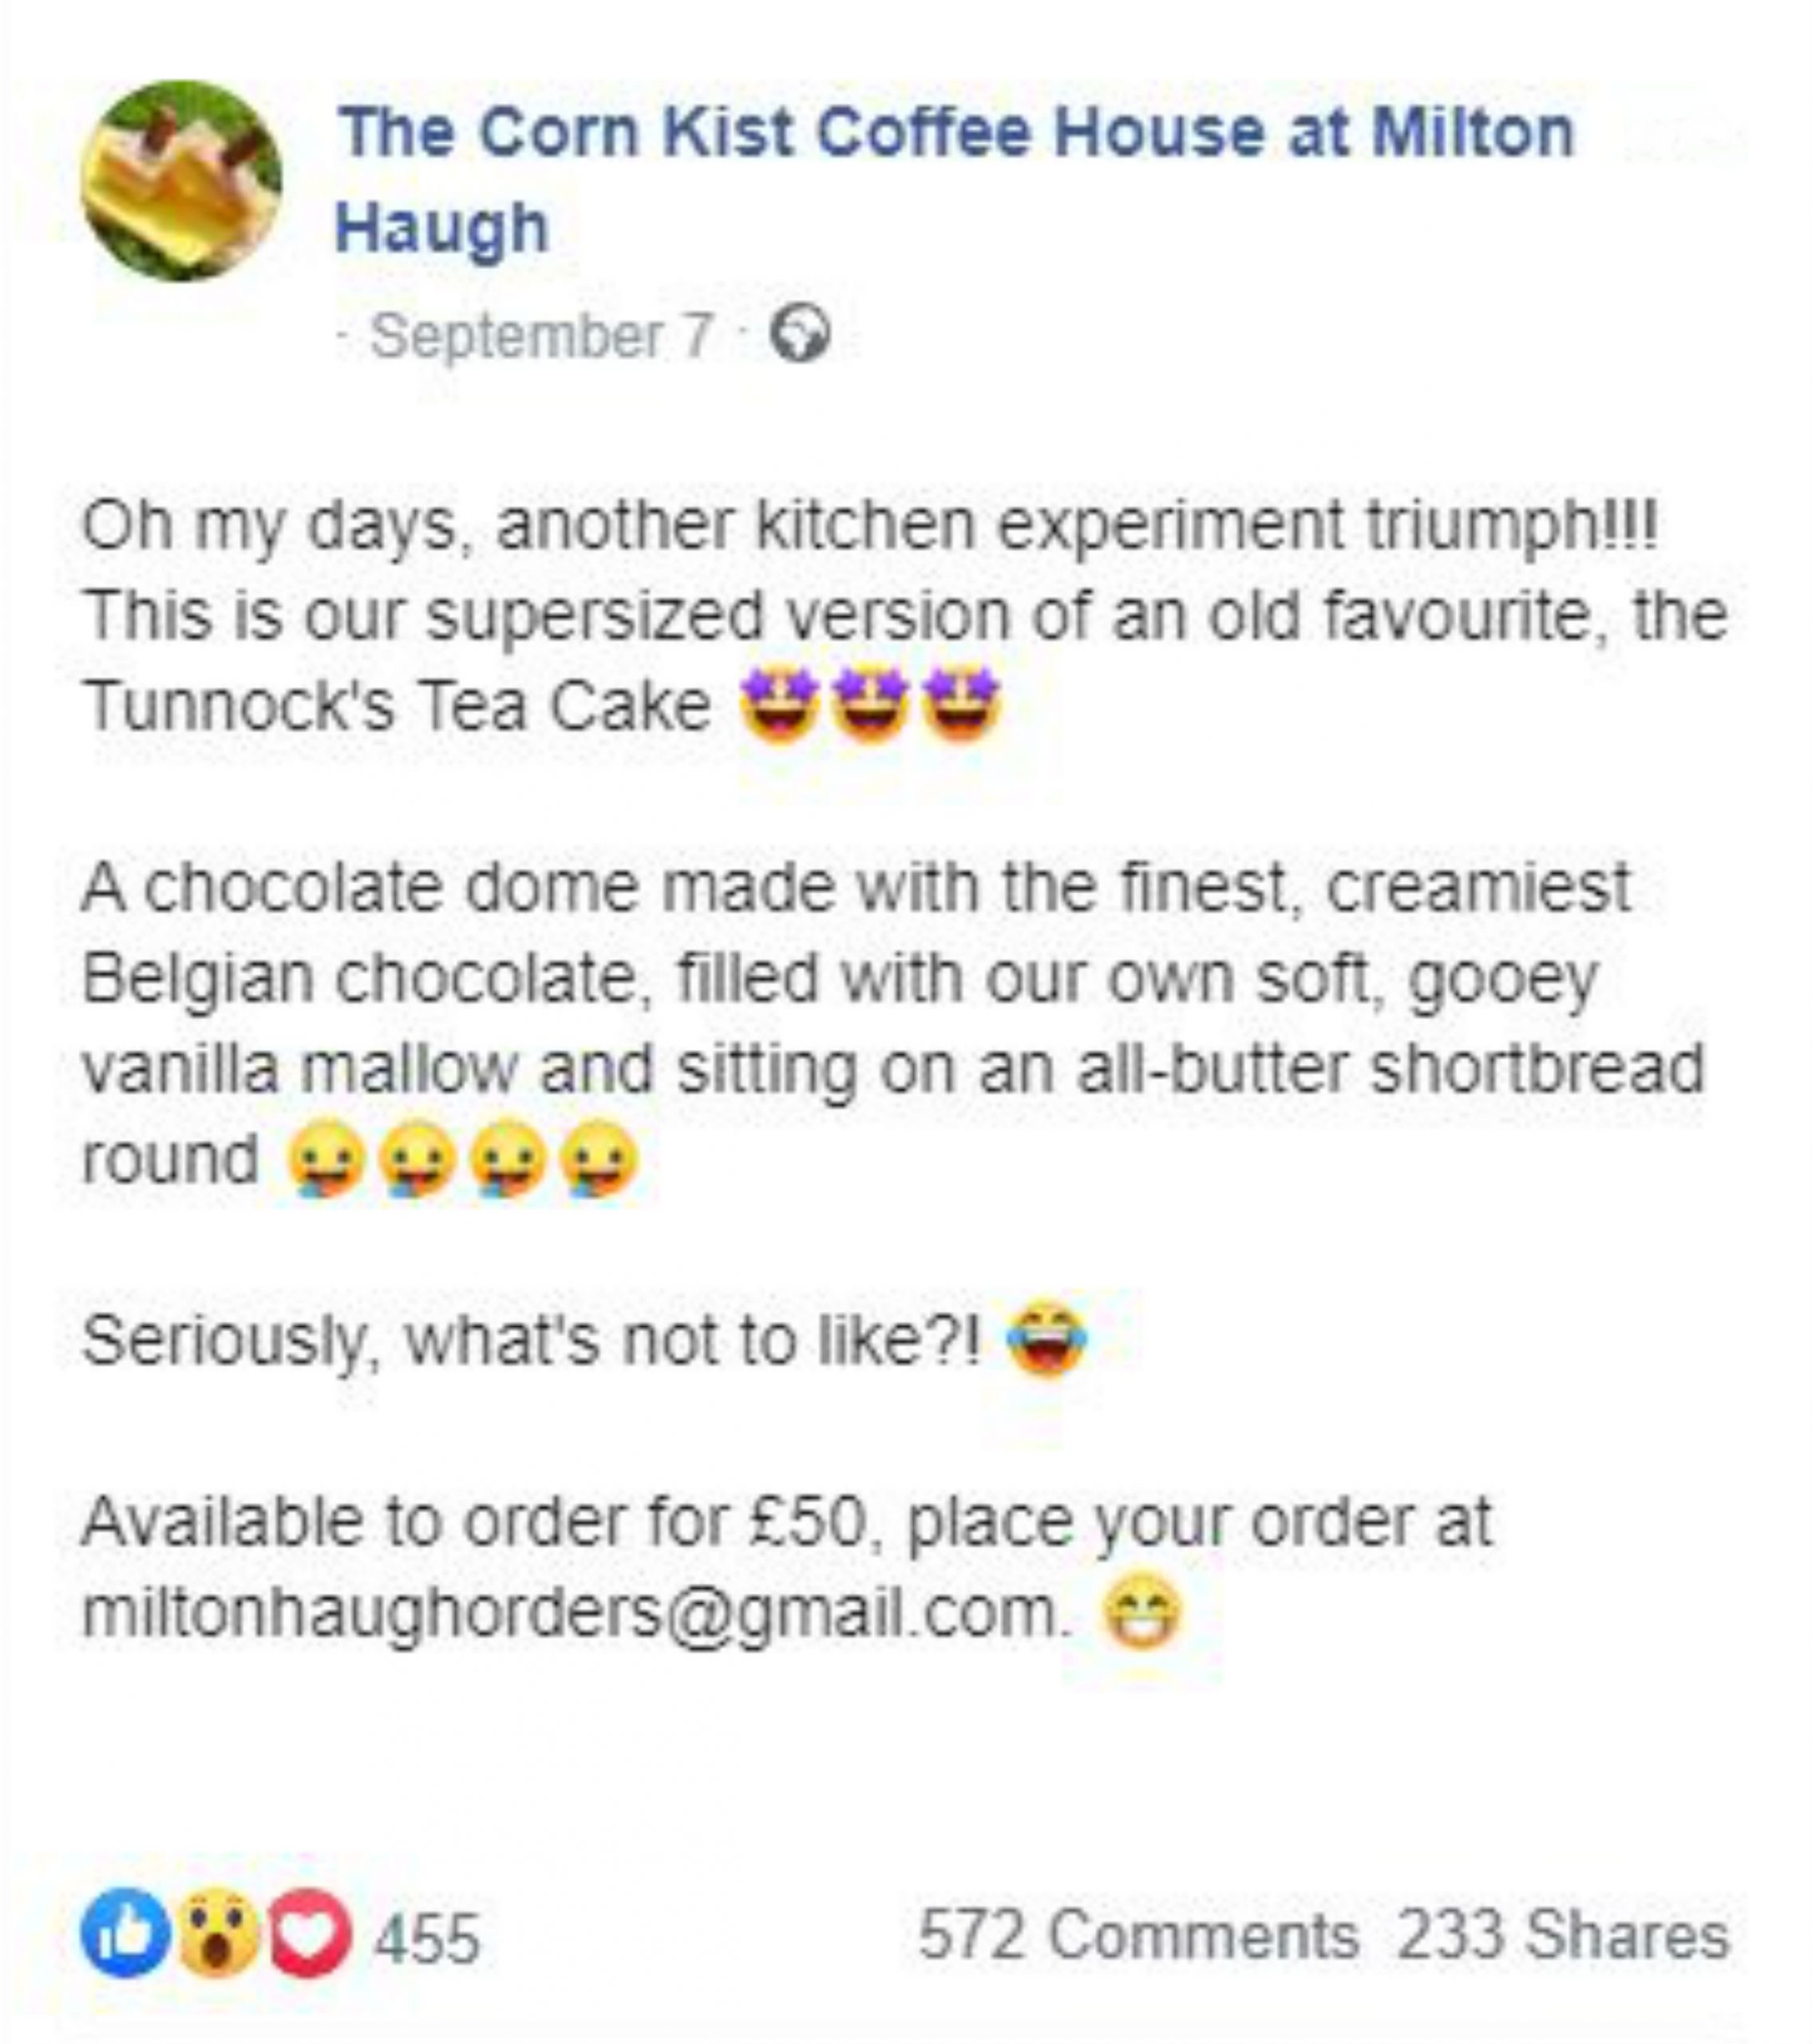 A Facebook post by the Corn Kist Coffee House